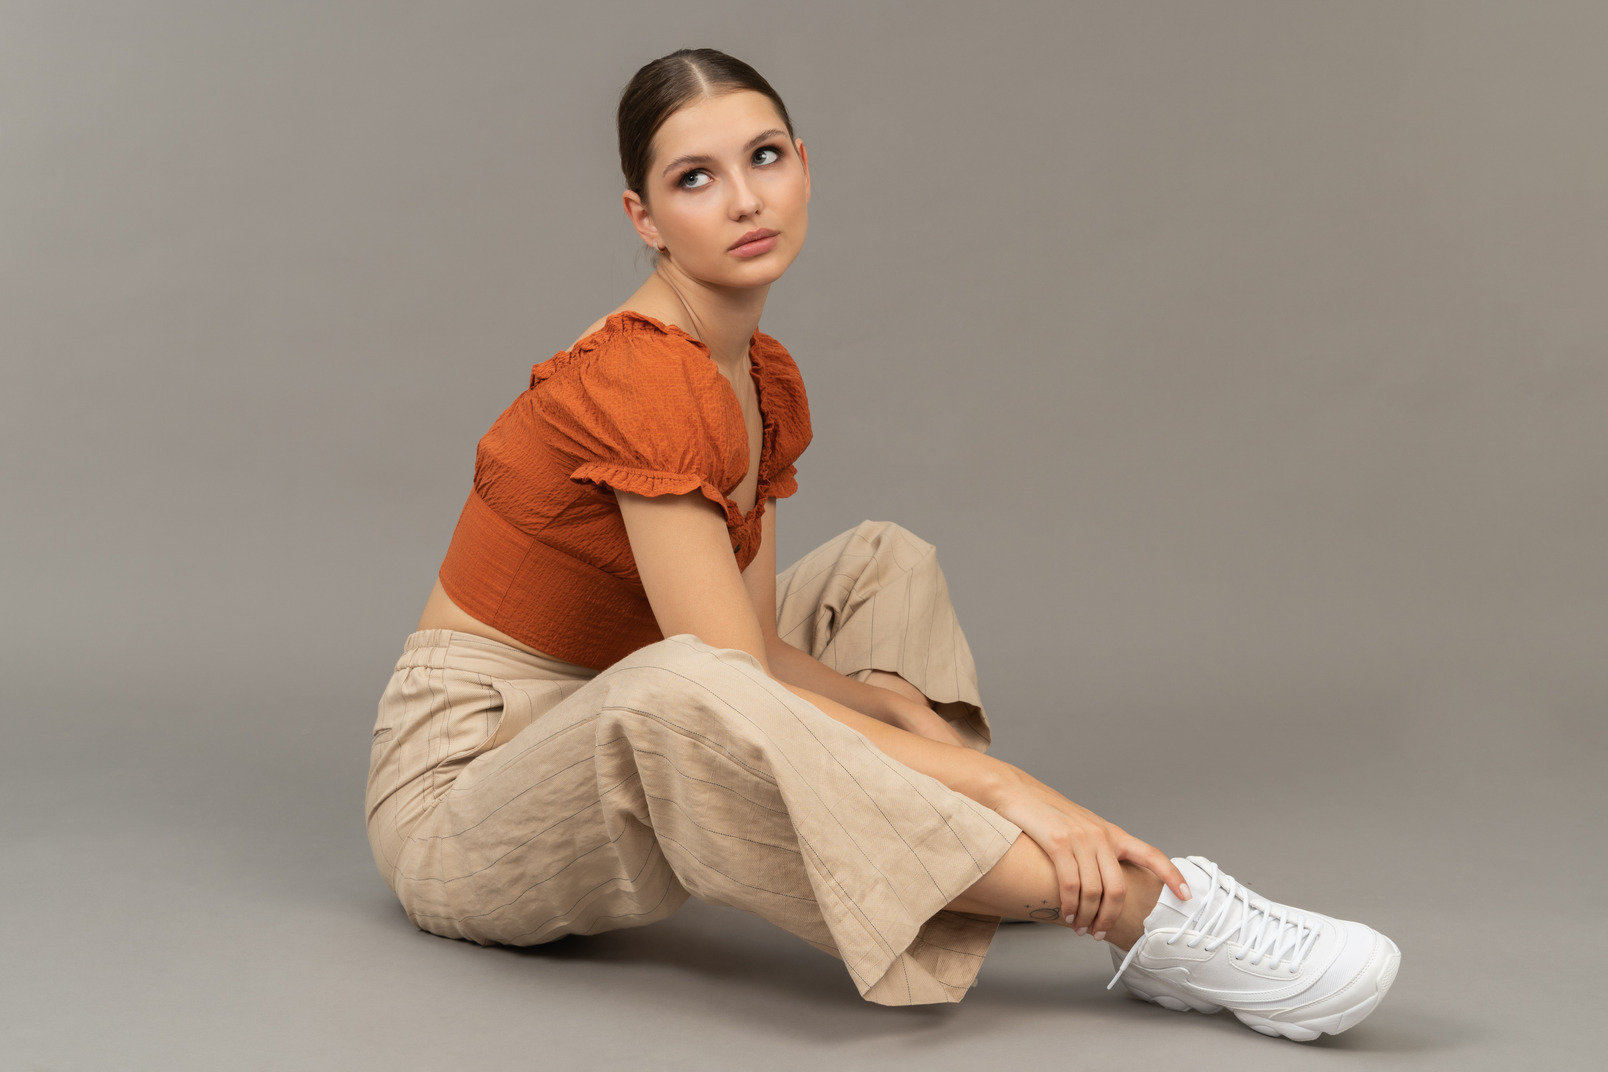 Young woman sits while holding her leg